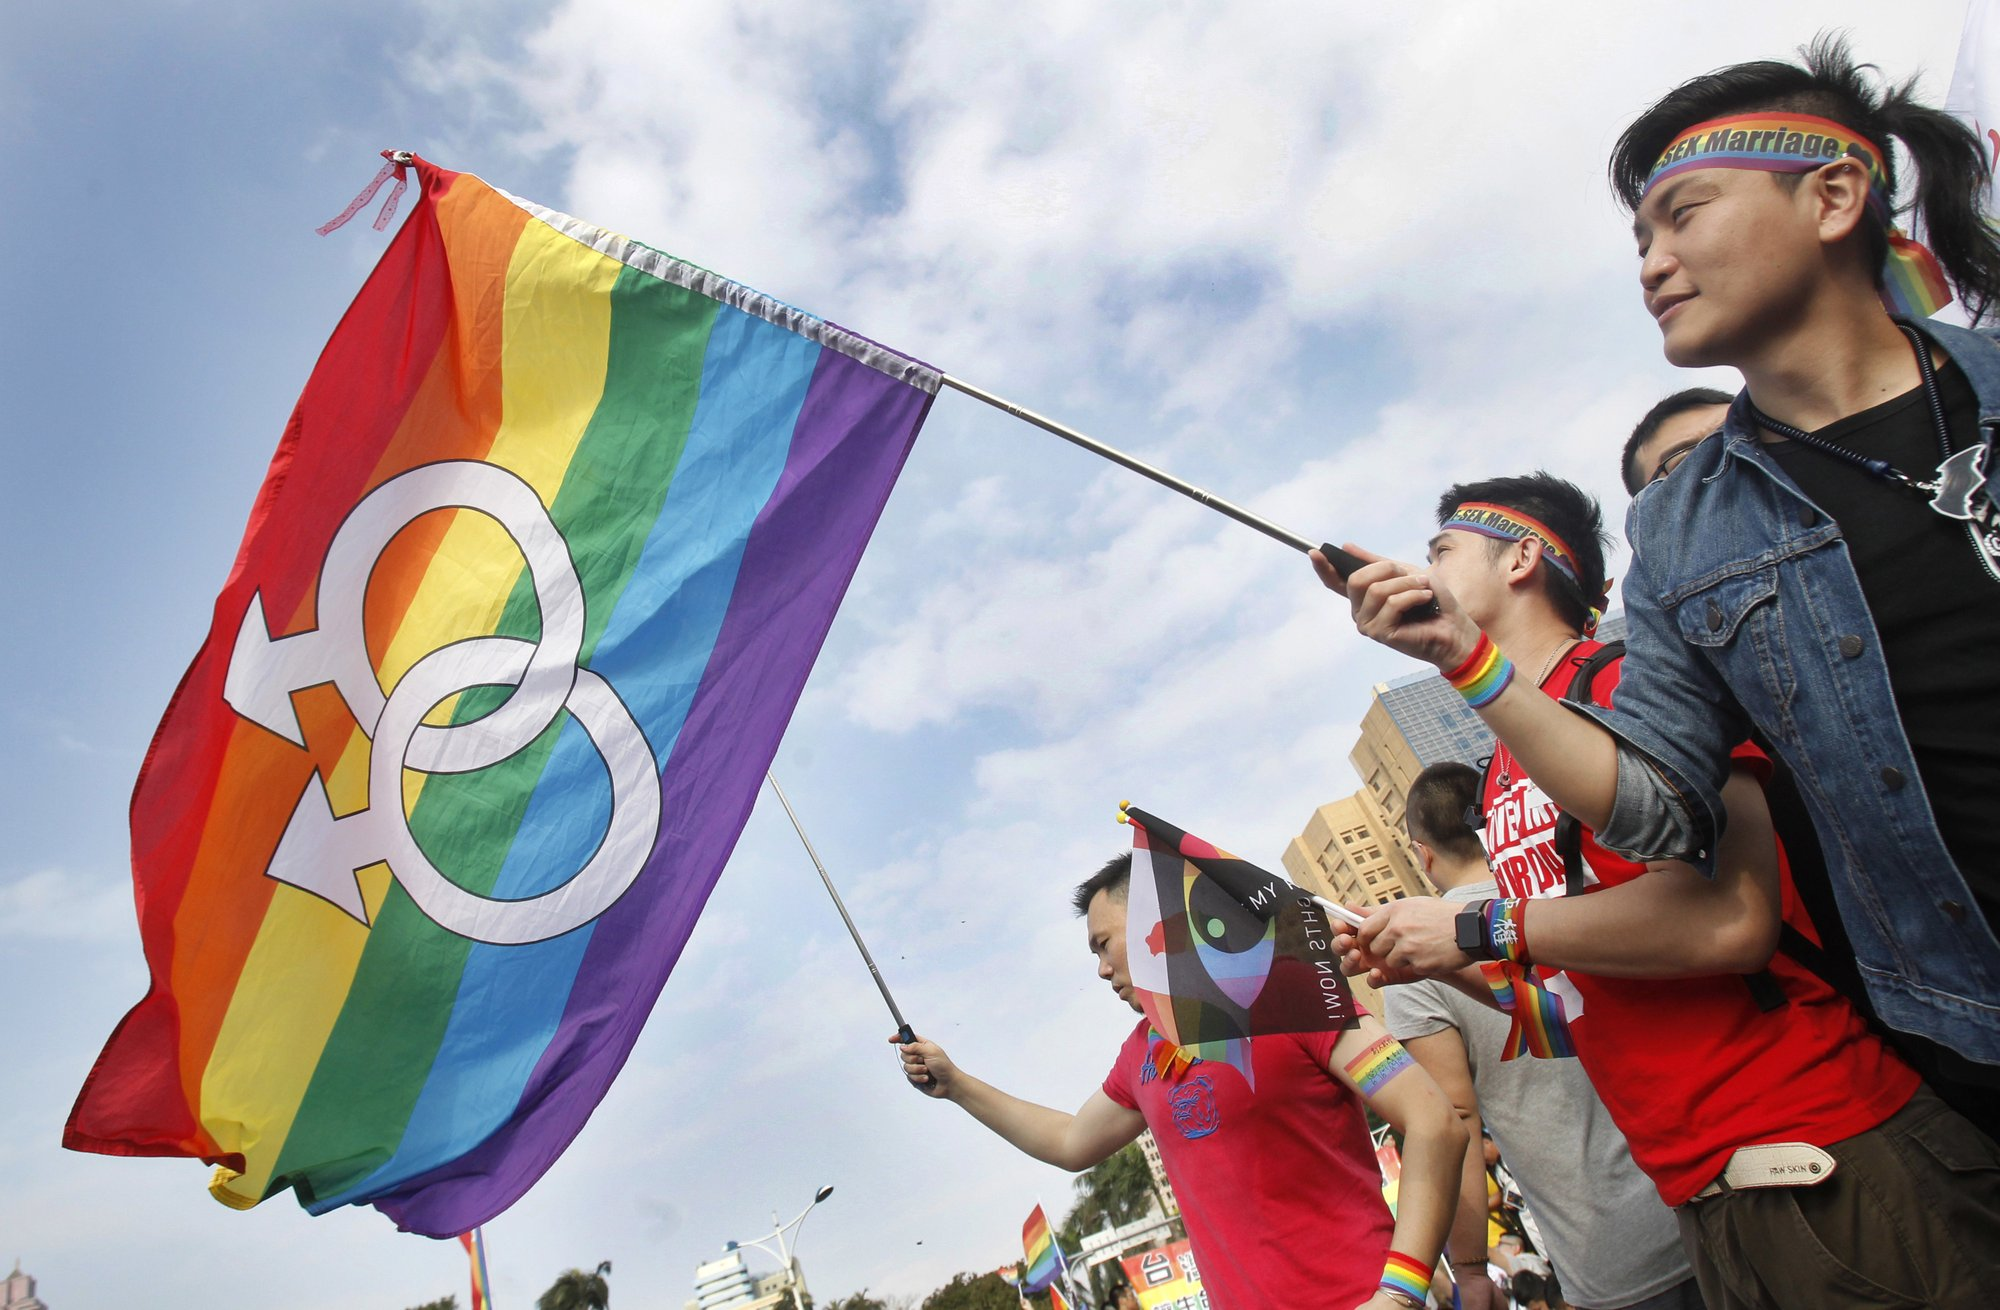 FILE - In this Dec. 10, 2016, file photo, supporters of LGBT and human rights wave rainbow flags during a rally supporting a proposal to allow same-sex marriage in Taipei, Taiwan, on the World Human Rights Day. Photo: AP